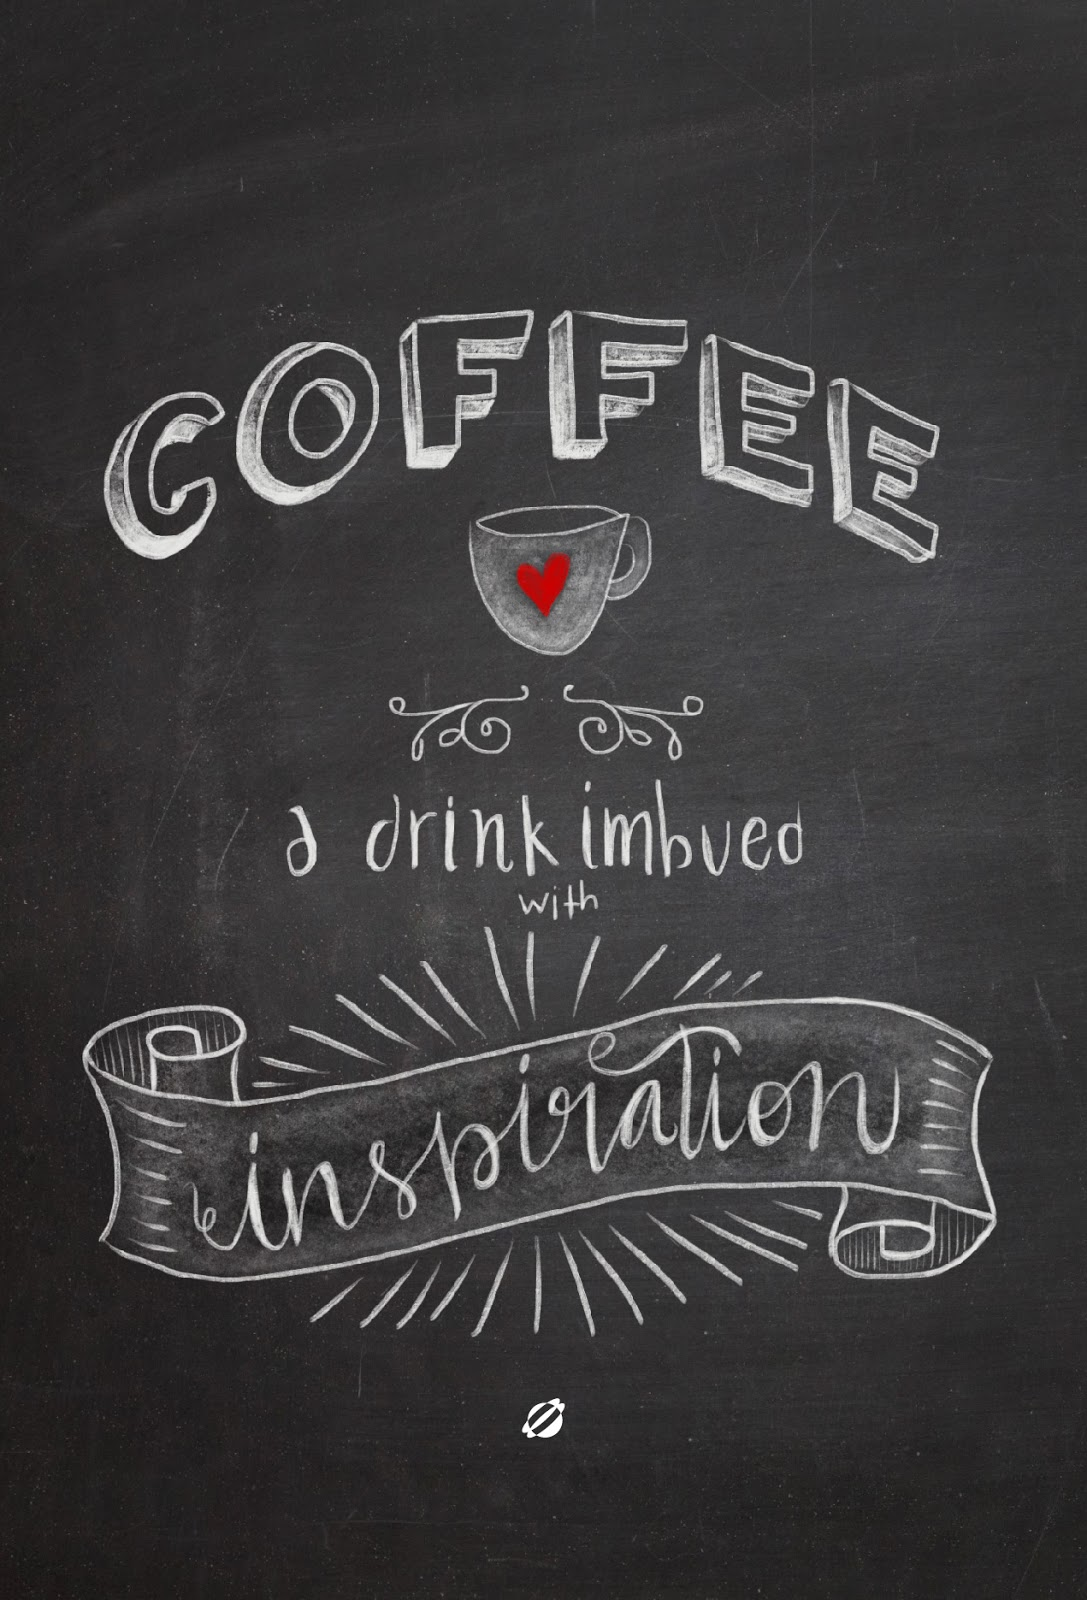 LostBumblebee ©2014 MDBN- Hand Lettered Coffee INBUED with Inspiration - FREE PRINTABLE- Personal Use only